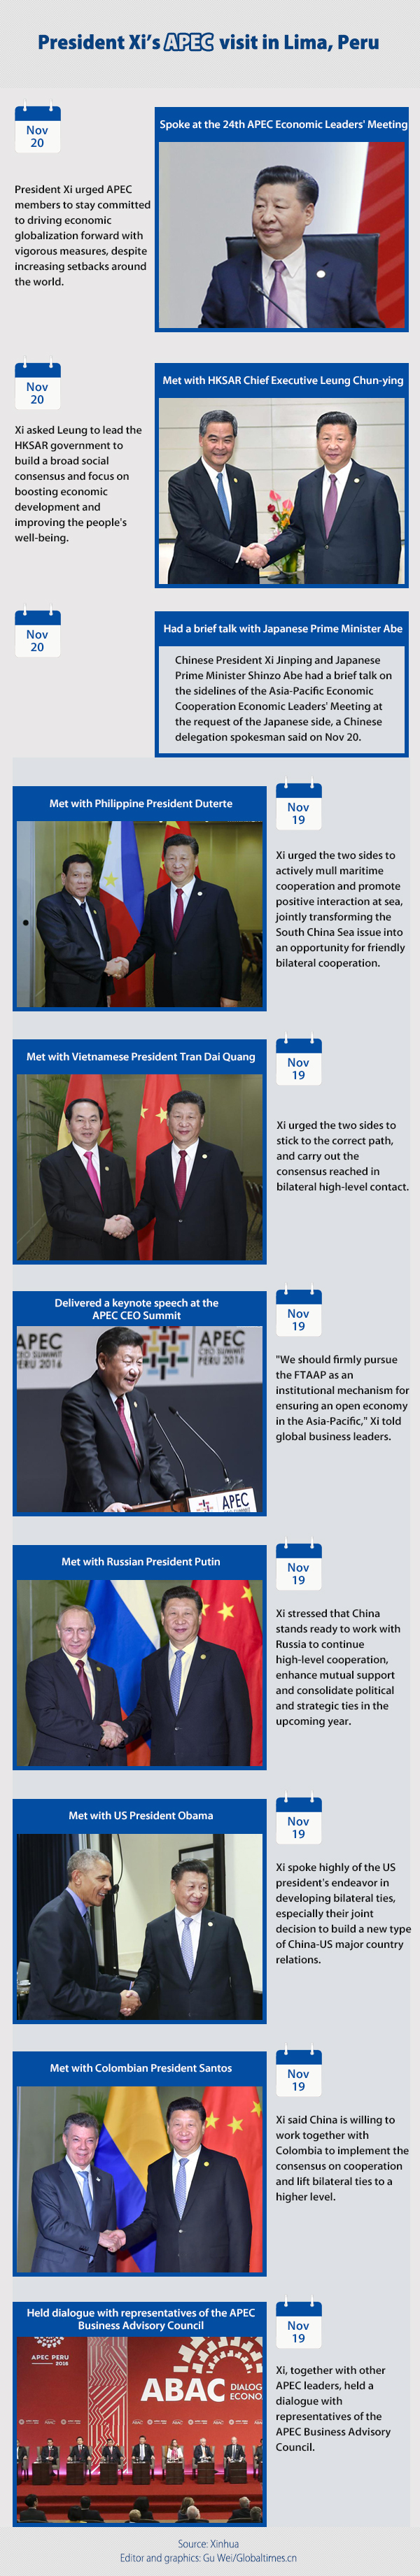 President Xi's APEC visit to Lima, Peru Graphic: Globaltimes.cn